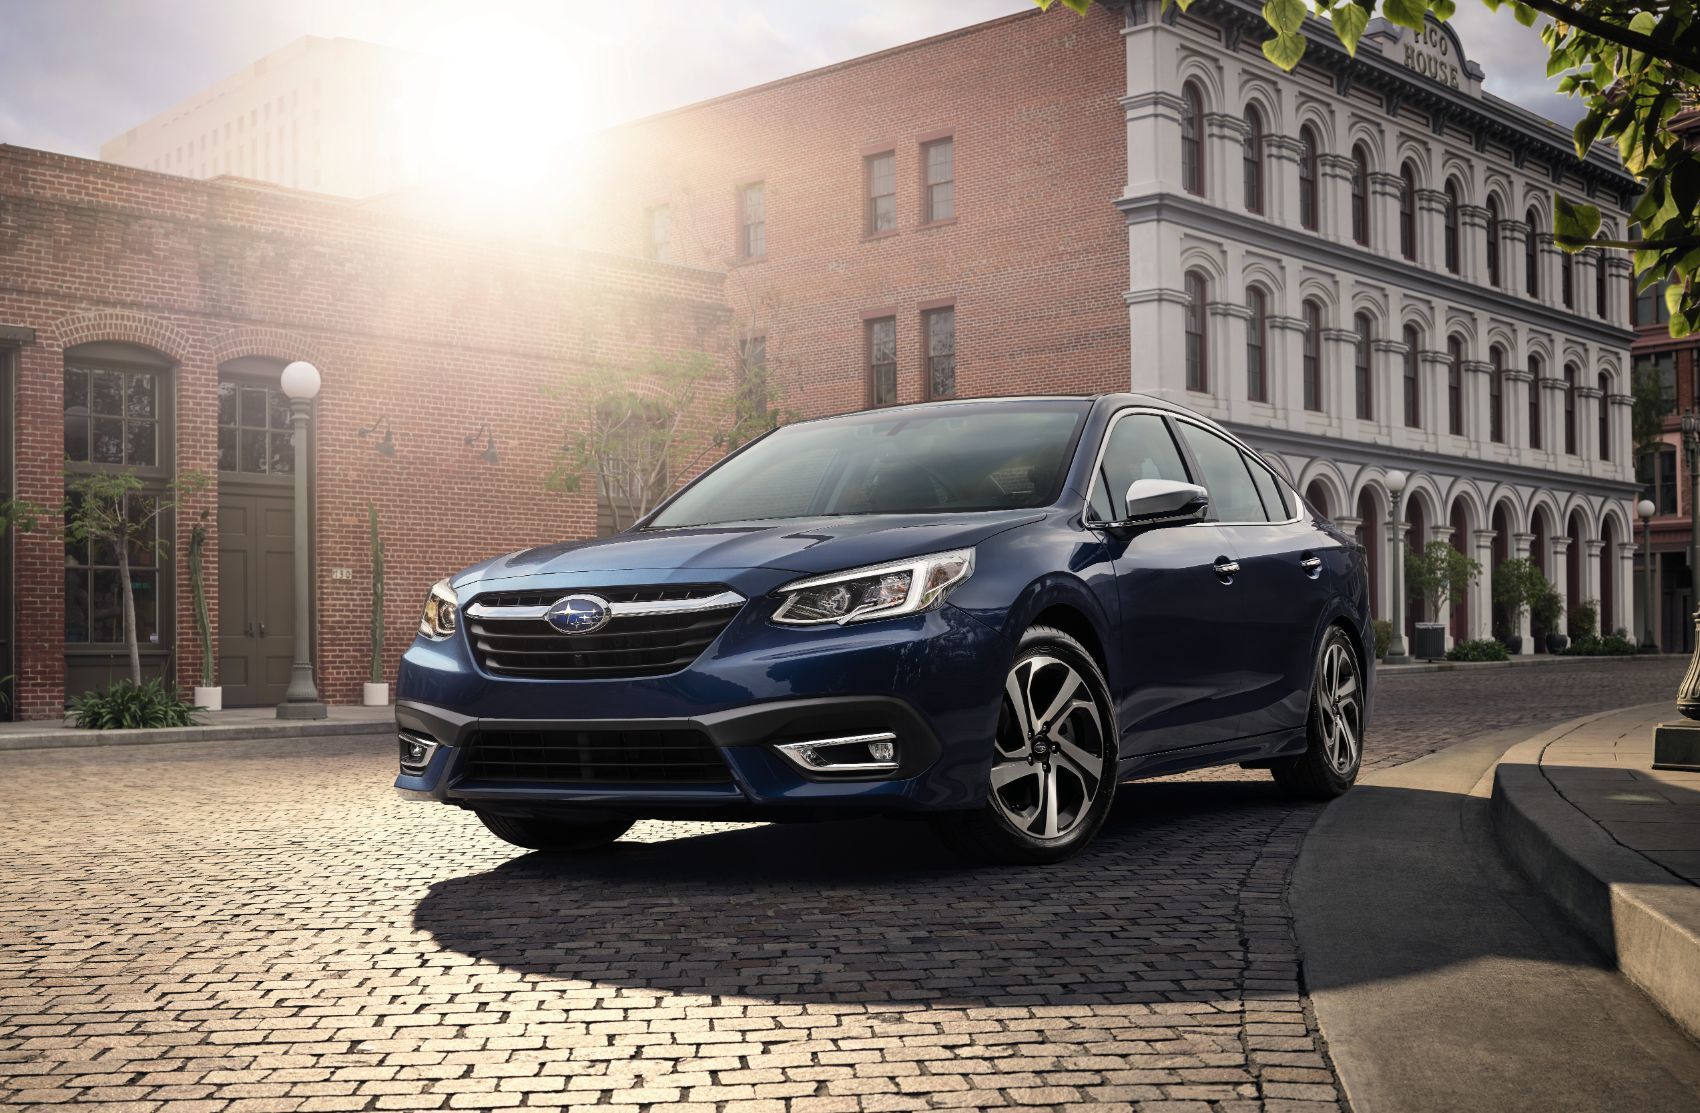 2021 Subaru Legacy: Trim Levels, Pricing Info & Other Fast Facts